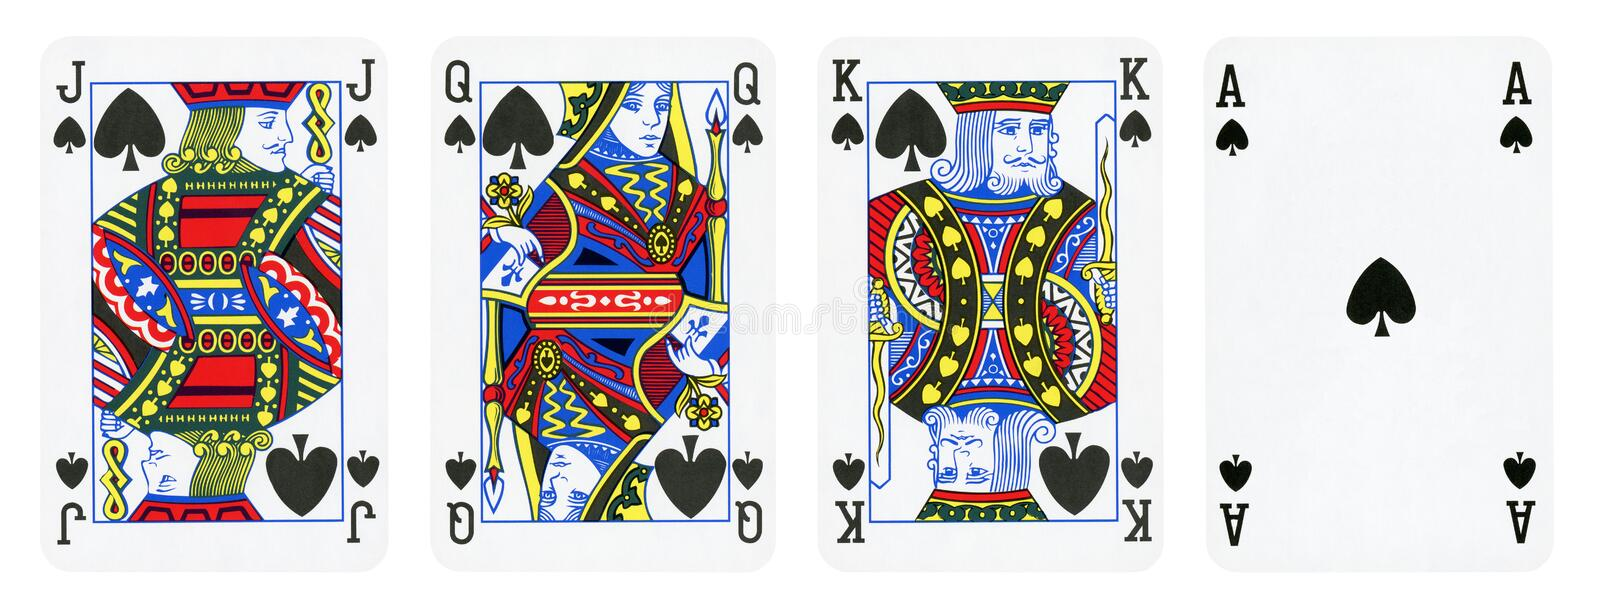 Spade Suit Playing Cards, Set include King, Queen, Jack and Ace stock illustration